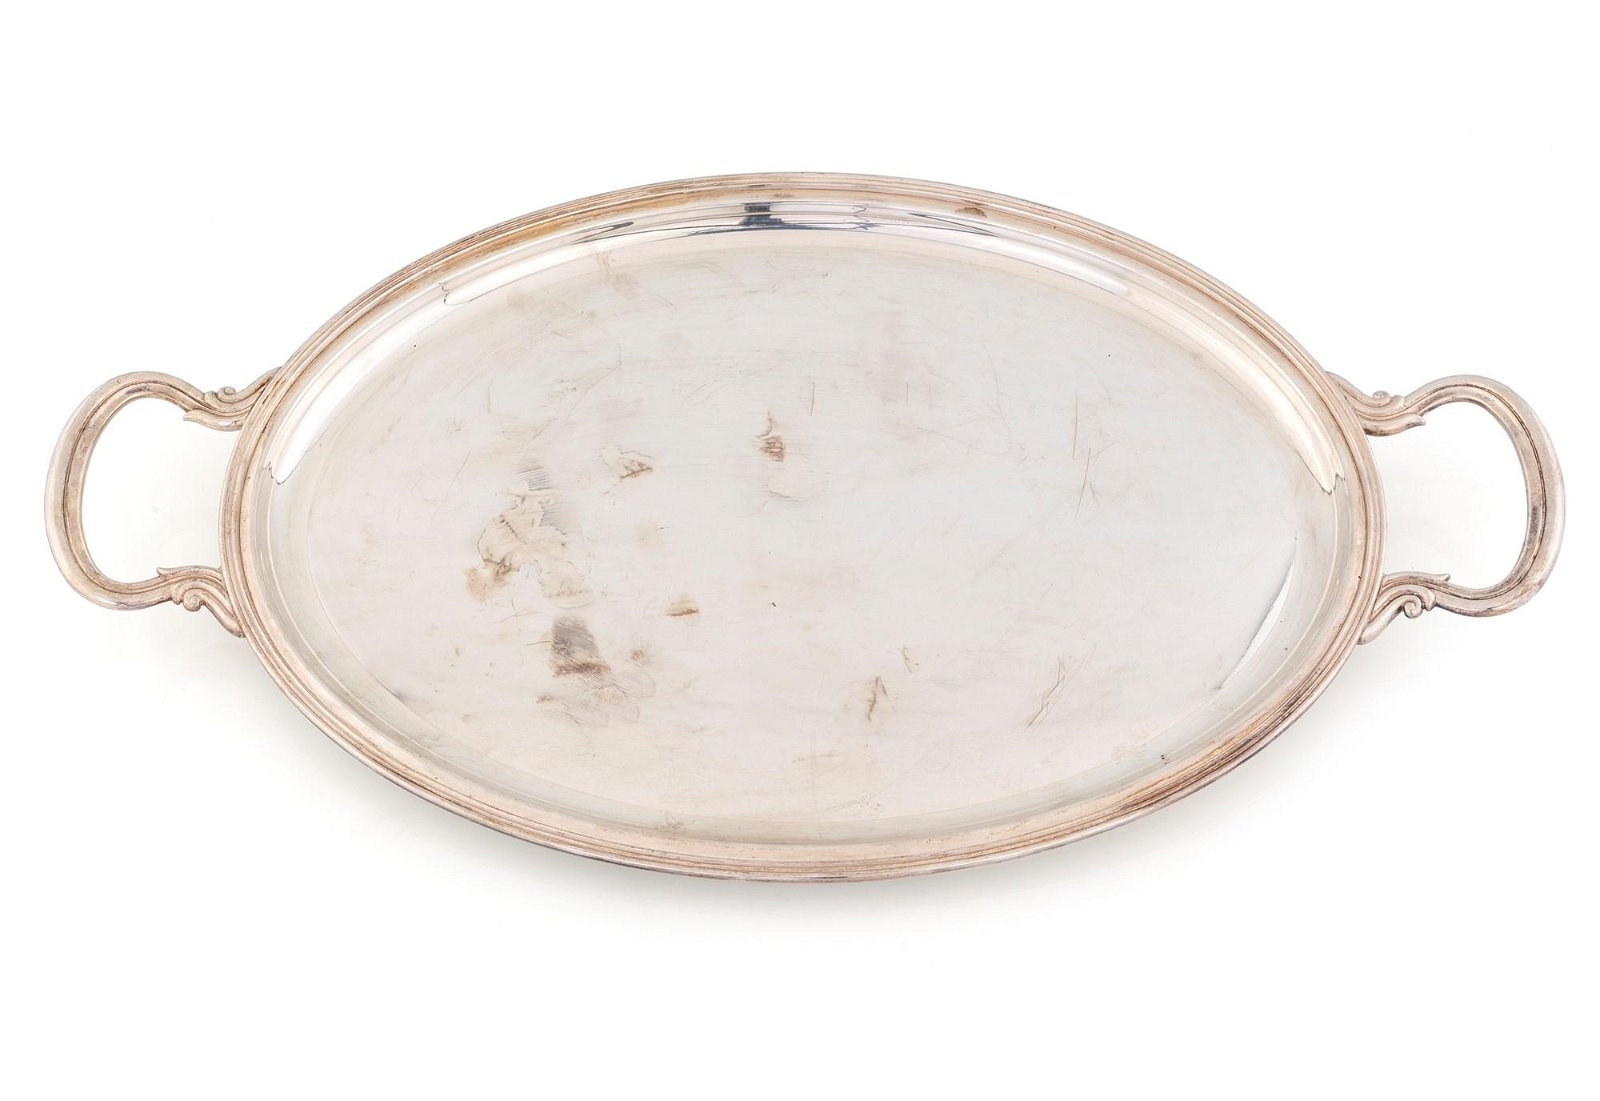 Oval silver tray with handles